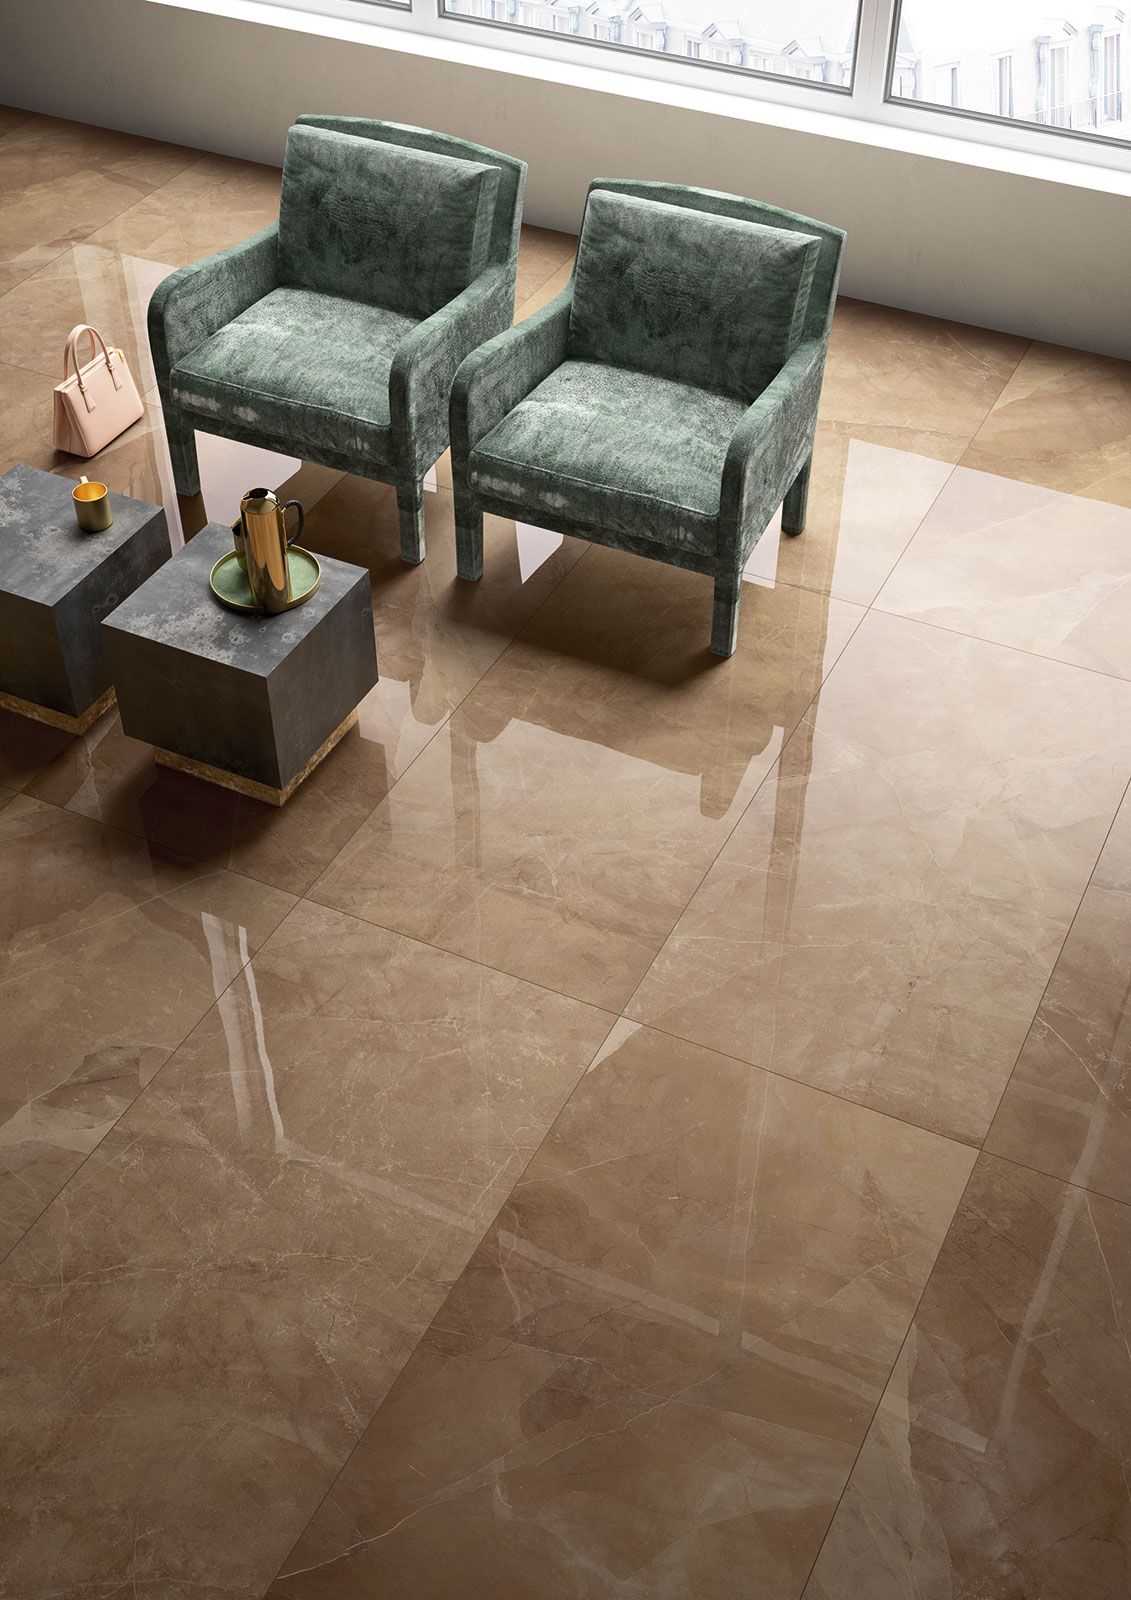 Carrelage imitation marbre voir les collections marazzi for Carrelage imitation marbre gris